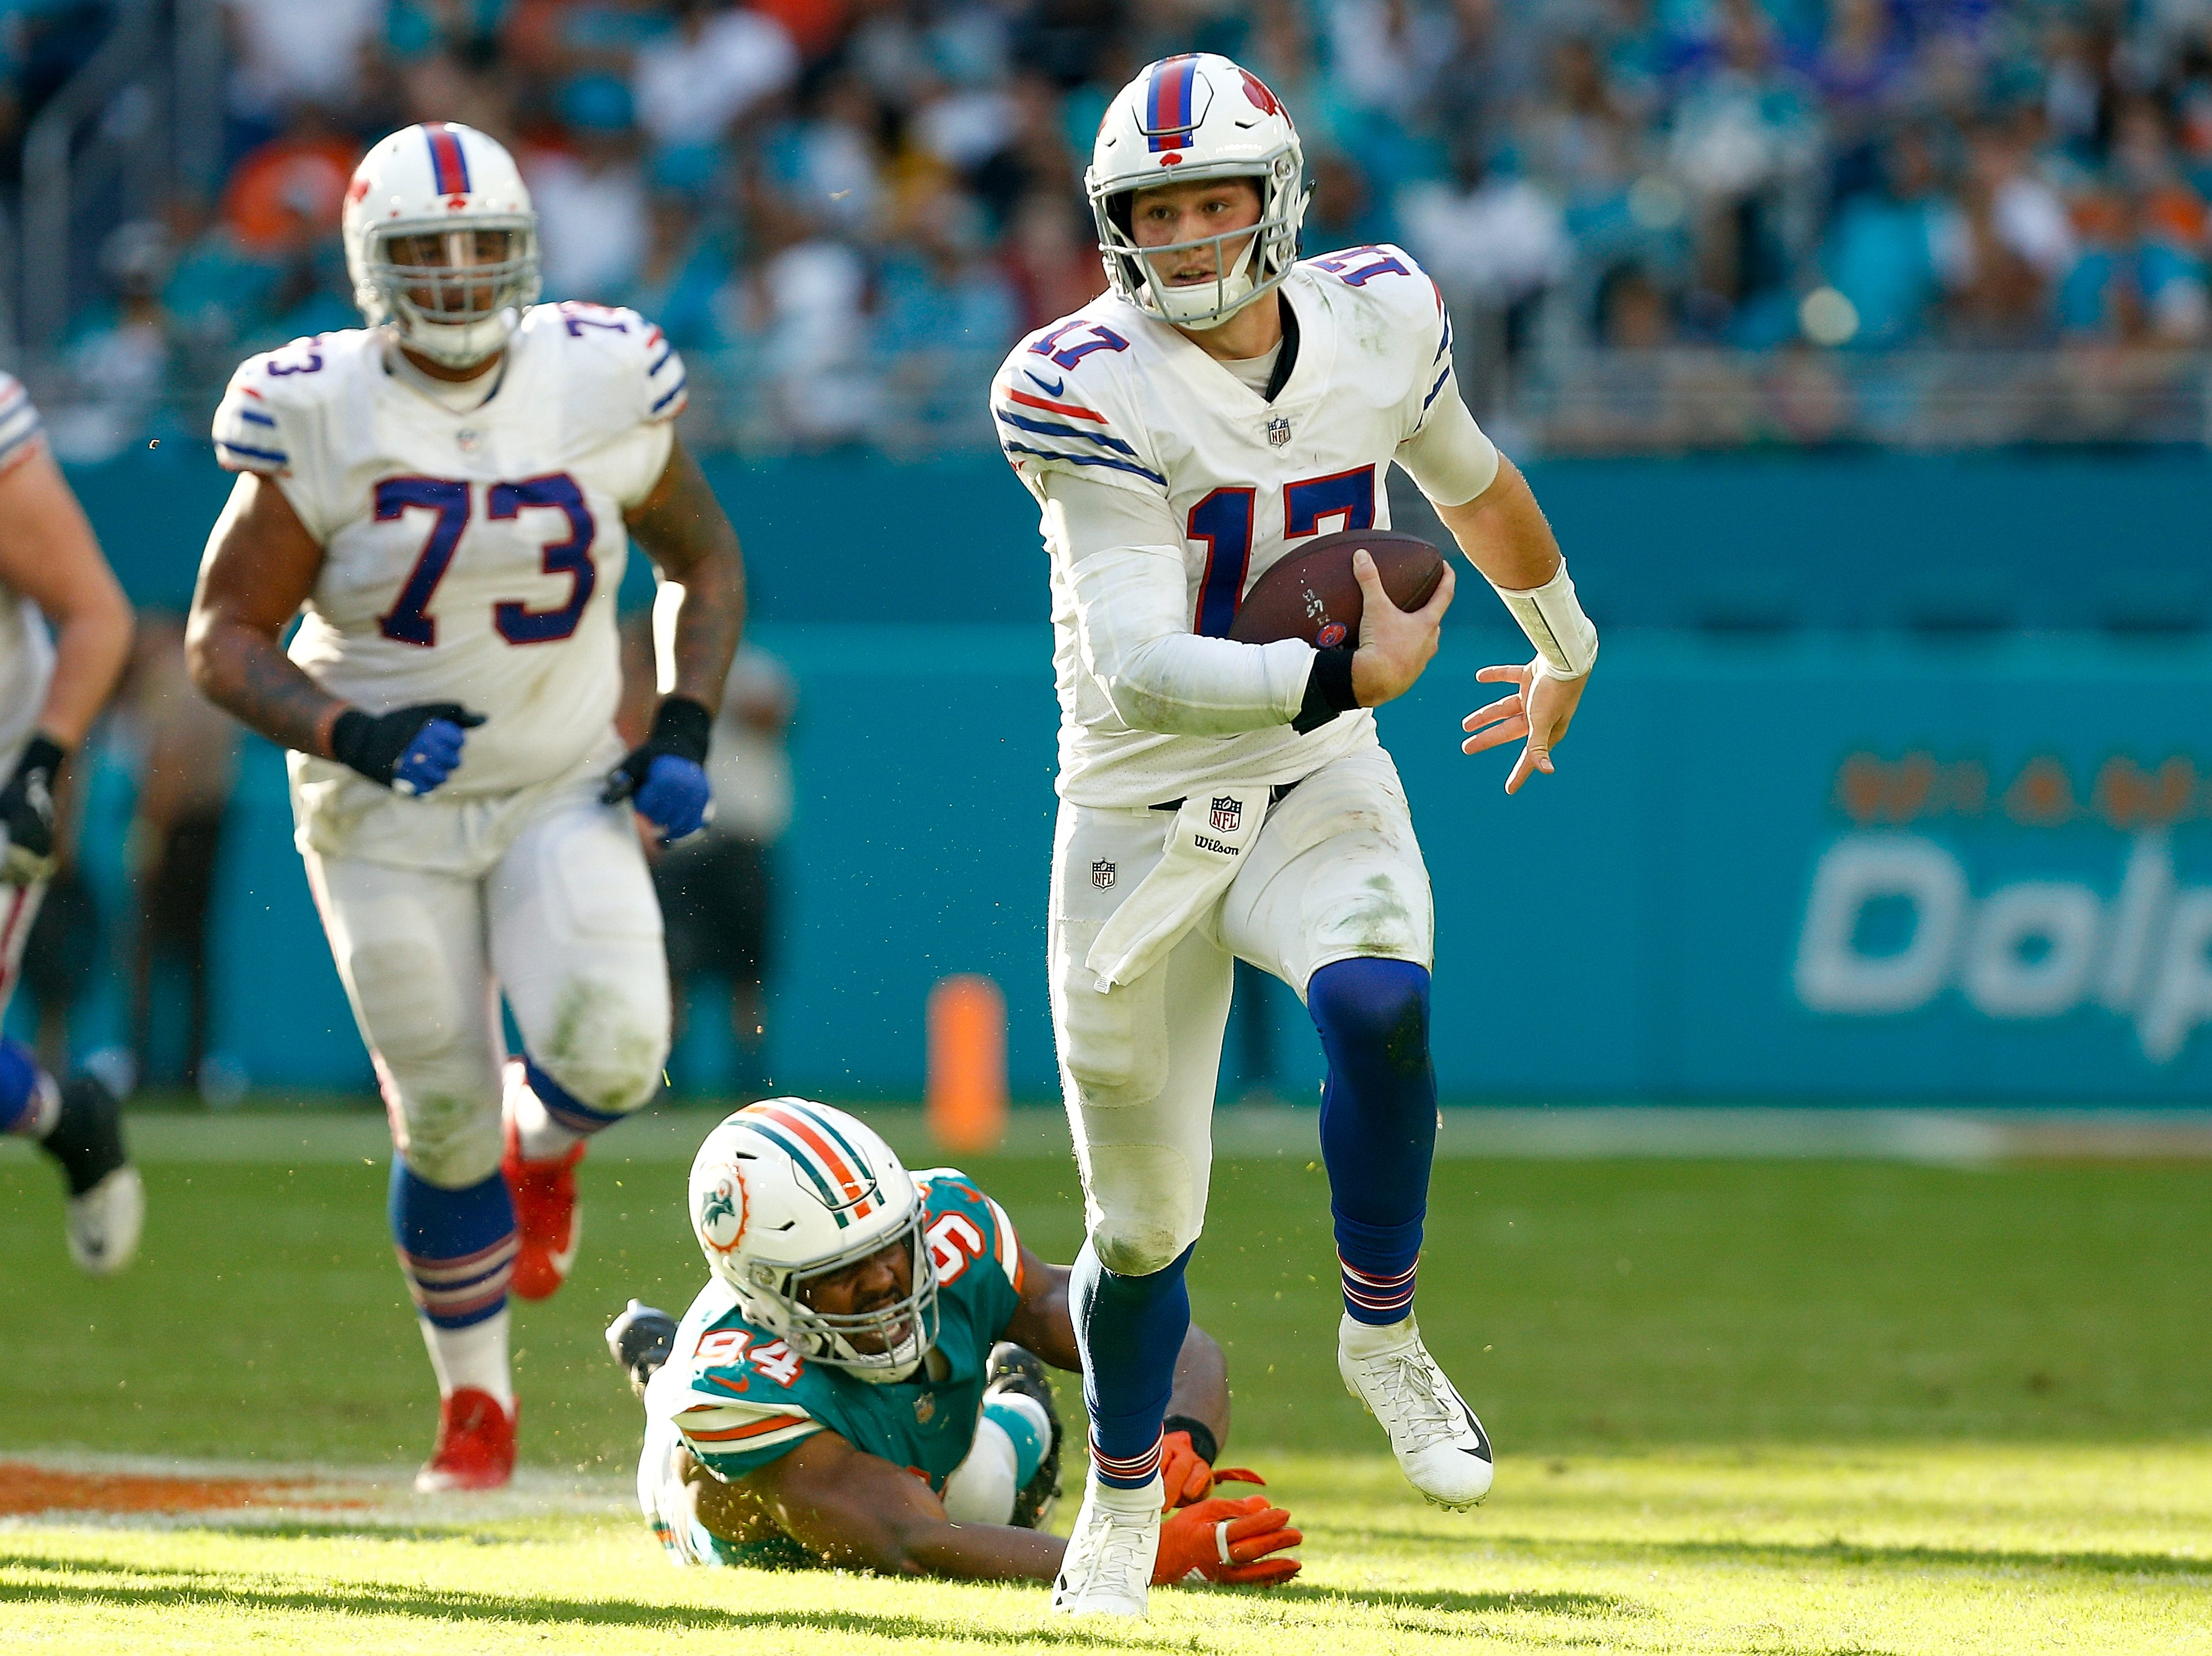 MIAMI, FL - DECEMBER 02:  Josh Allen #17 of the Buffalo Bills runs with the ball against the Miami Dolphins during the first half at Hard Rock Stadium on December 2, 2018 in Miami, Florida.  (Photo by Michael Reaves/Getty Images)